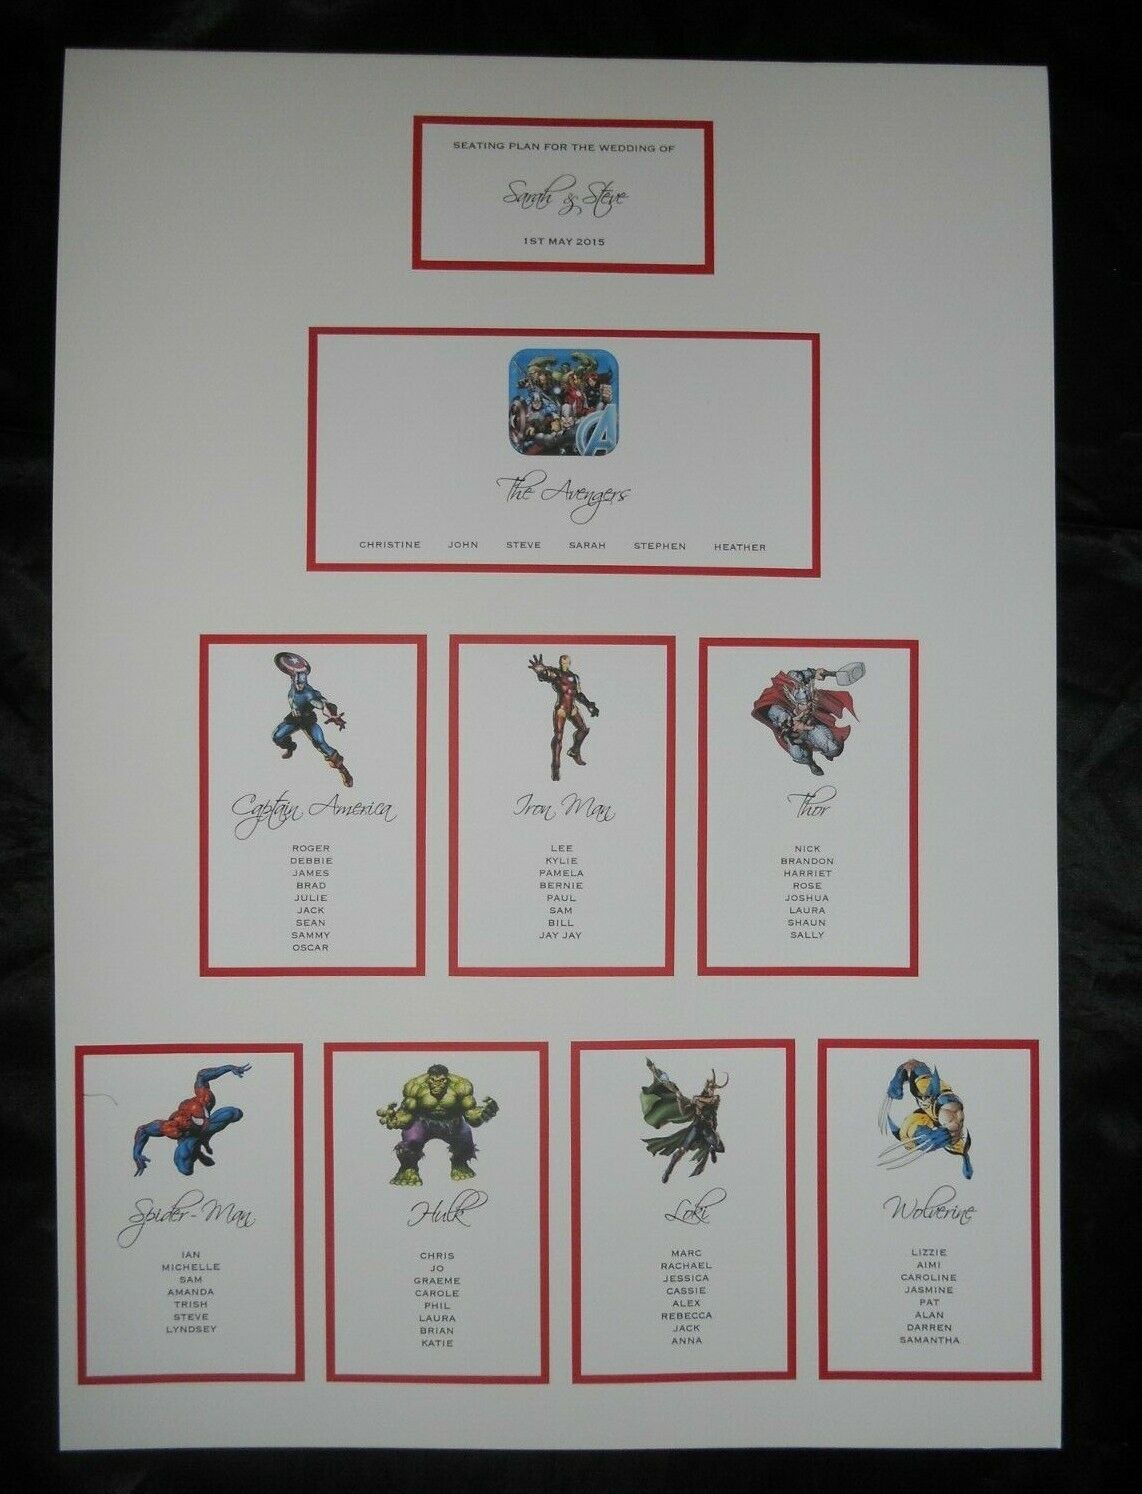 A2 SUPERHERO WEDDING TABLE PLAN MARVEL DC HEROES COMIC BOOK SEATING PLAN CHART